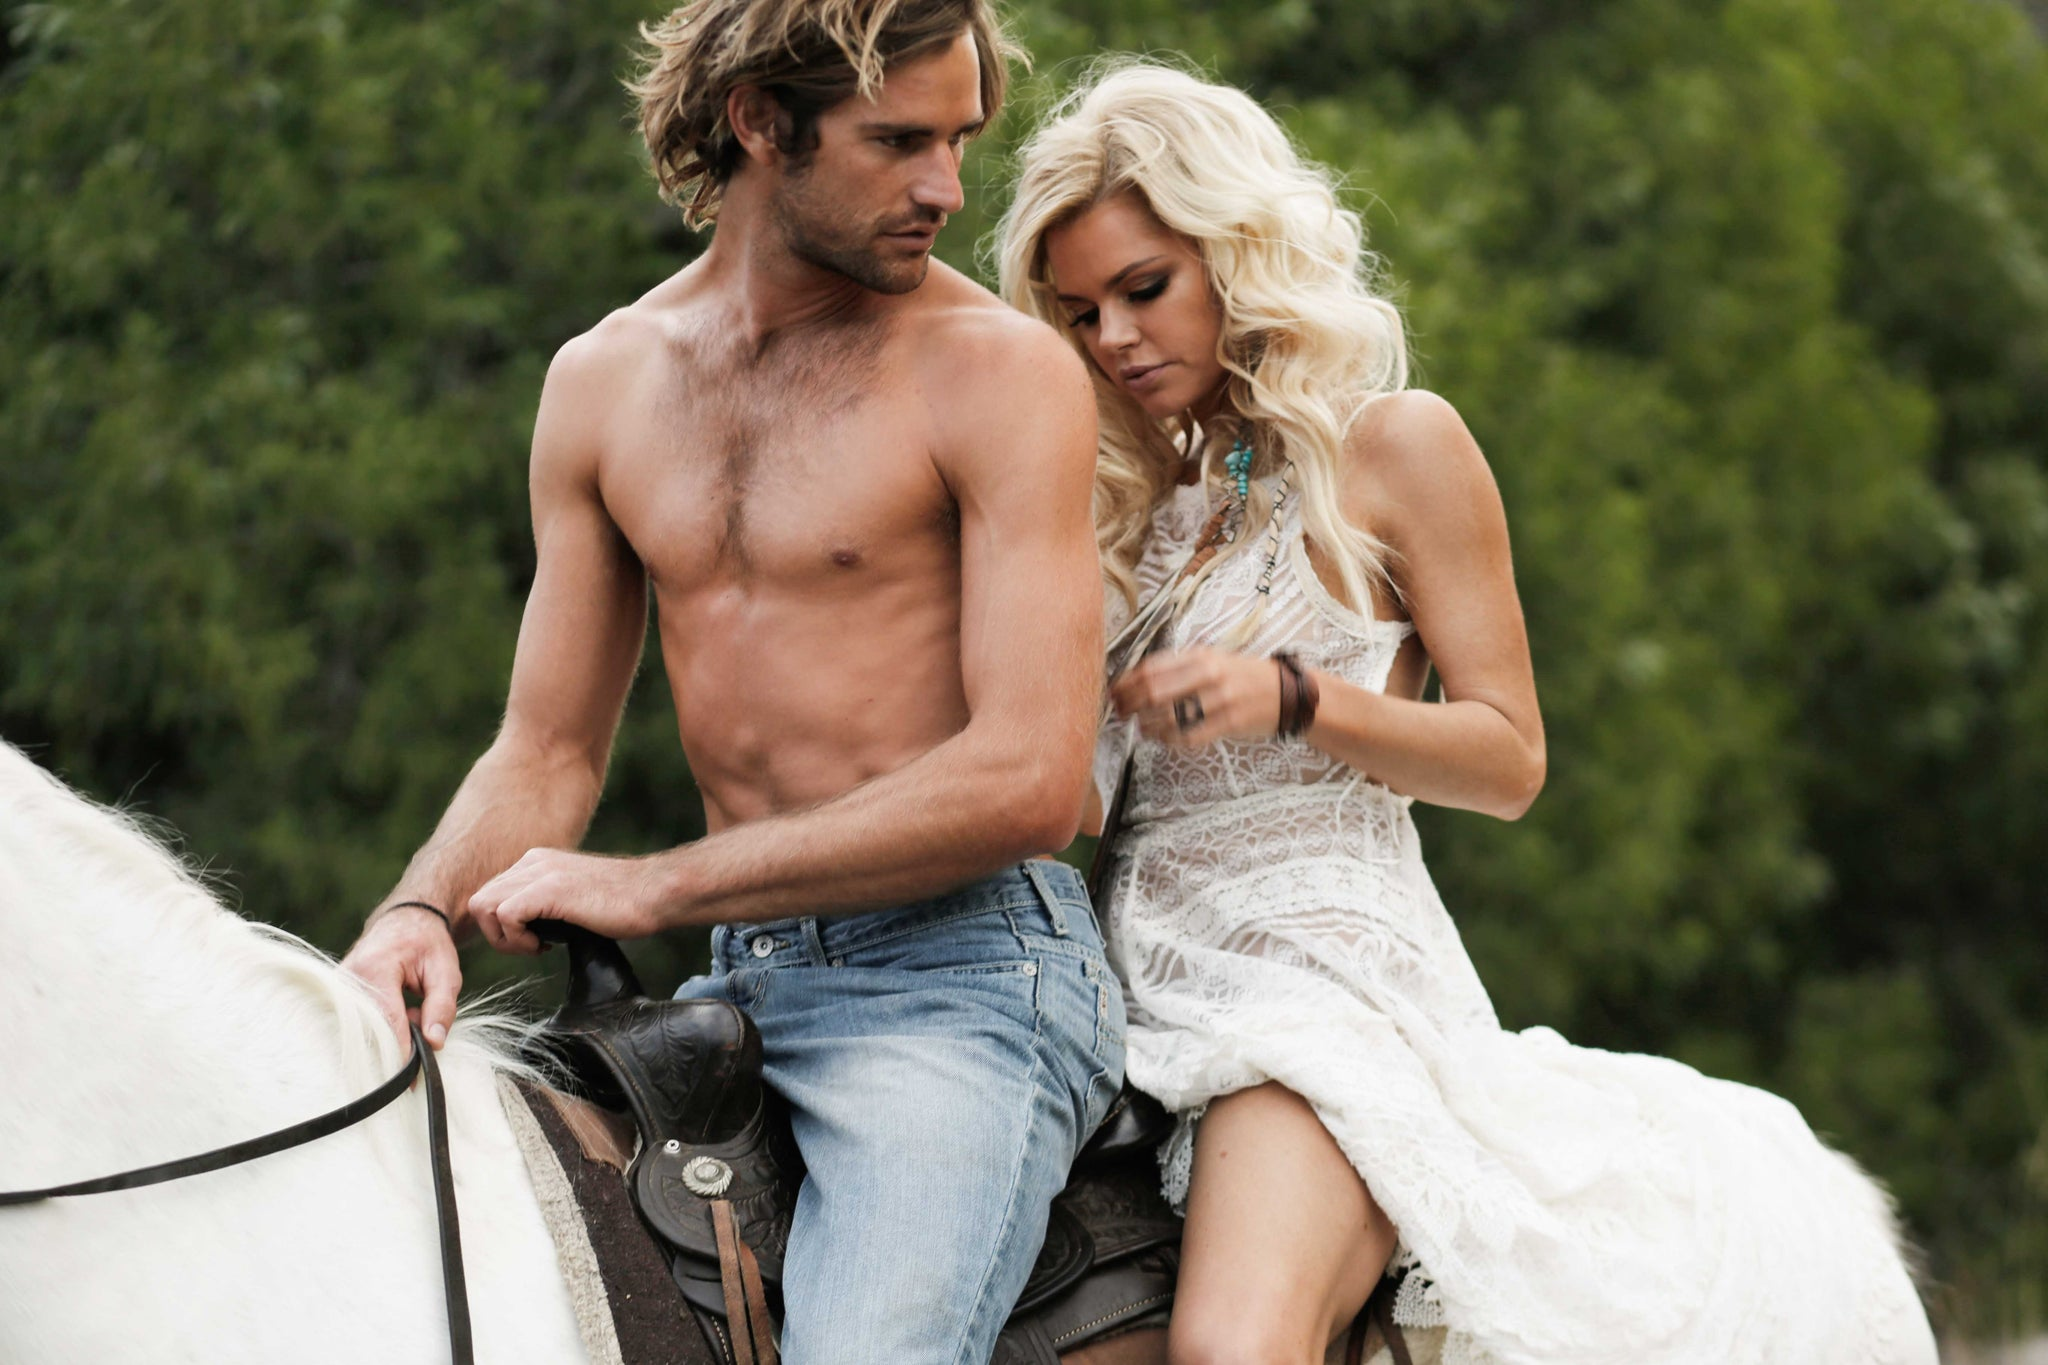 Sophie Monk on a horse with a hot guy